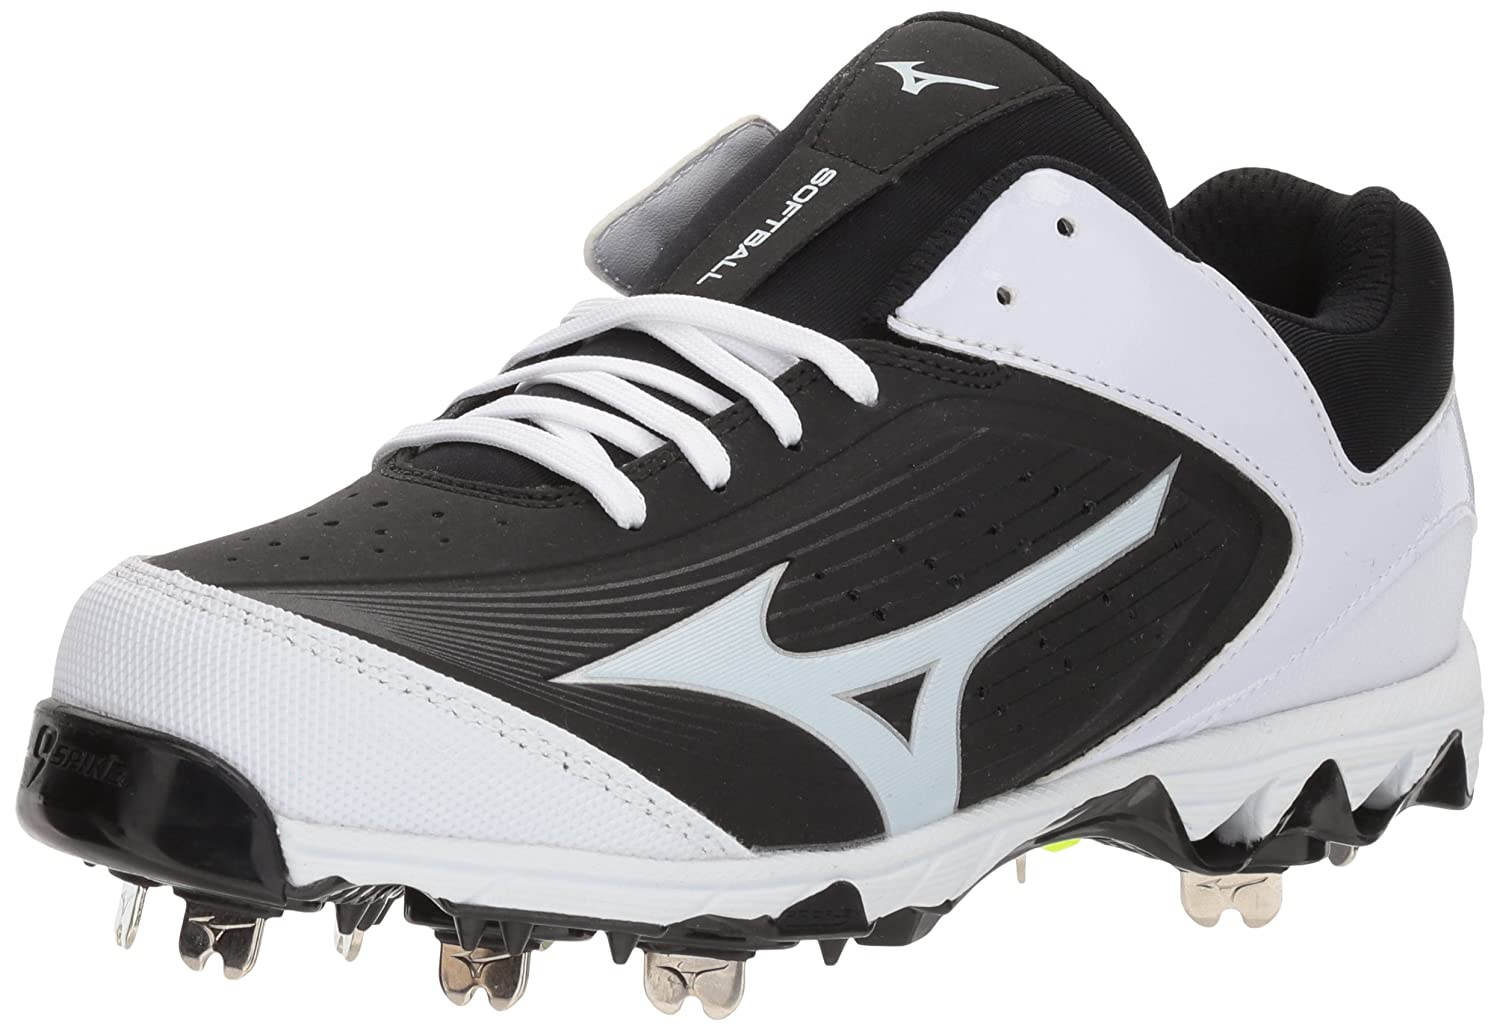 Mizuno Women's Swift 5 Fastpitch Cleat Softball Shoe B072JLTKSP 10.5 B(M) US|Black/White